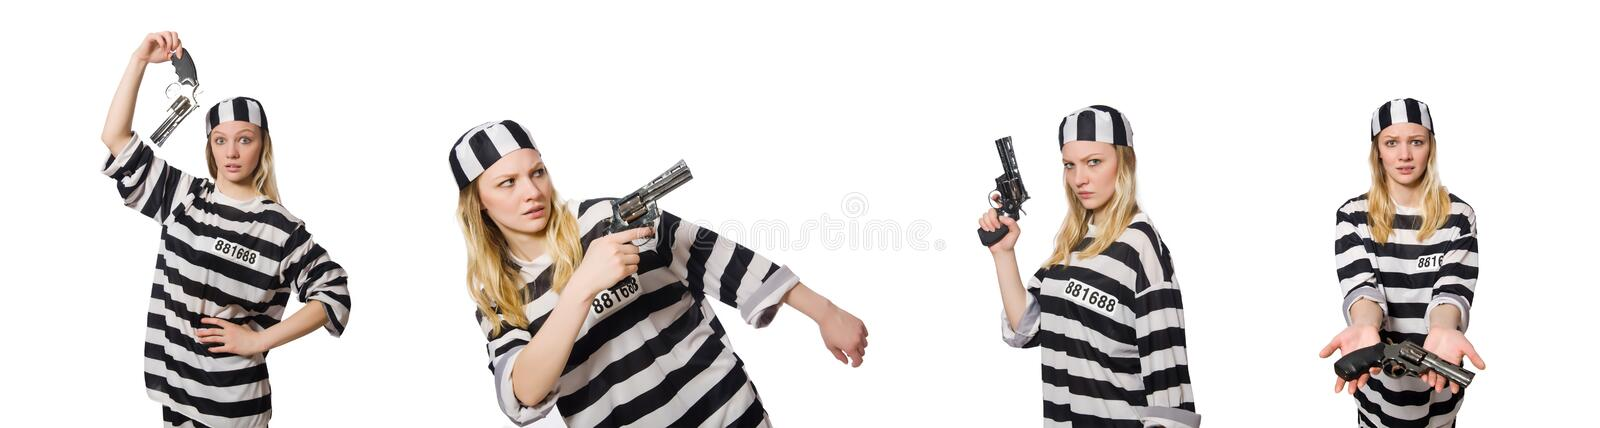 Prison inmate with gun isolated on white royalty free stock image